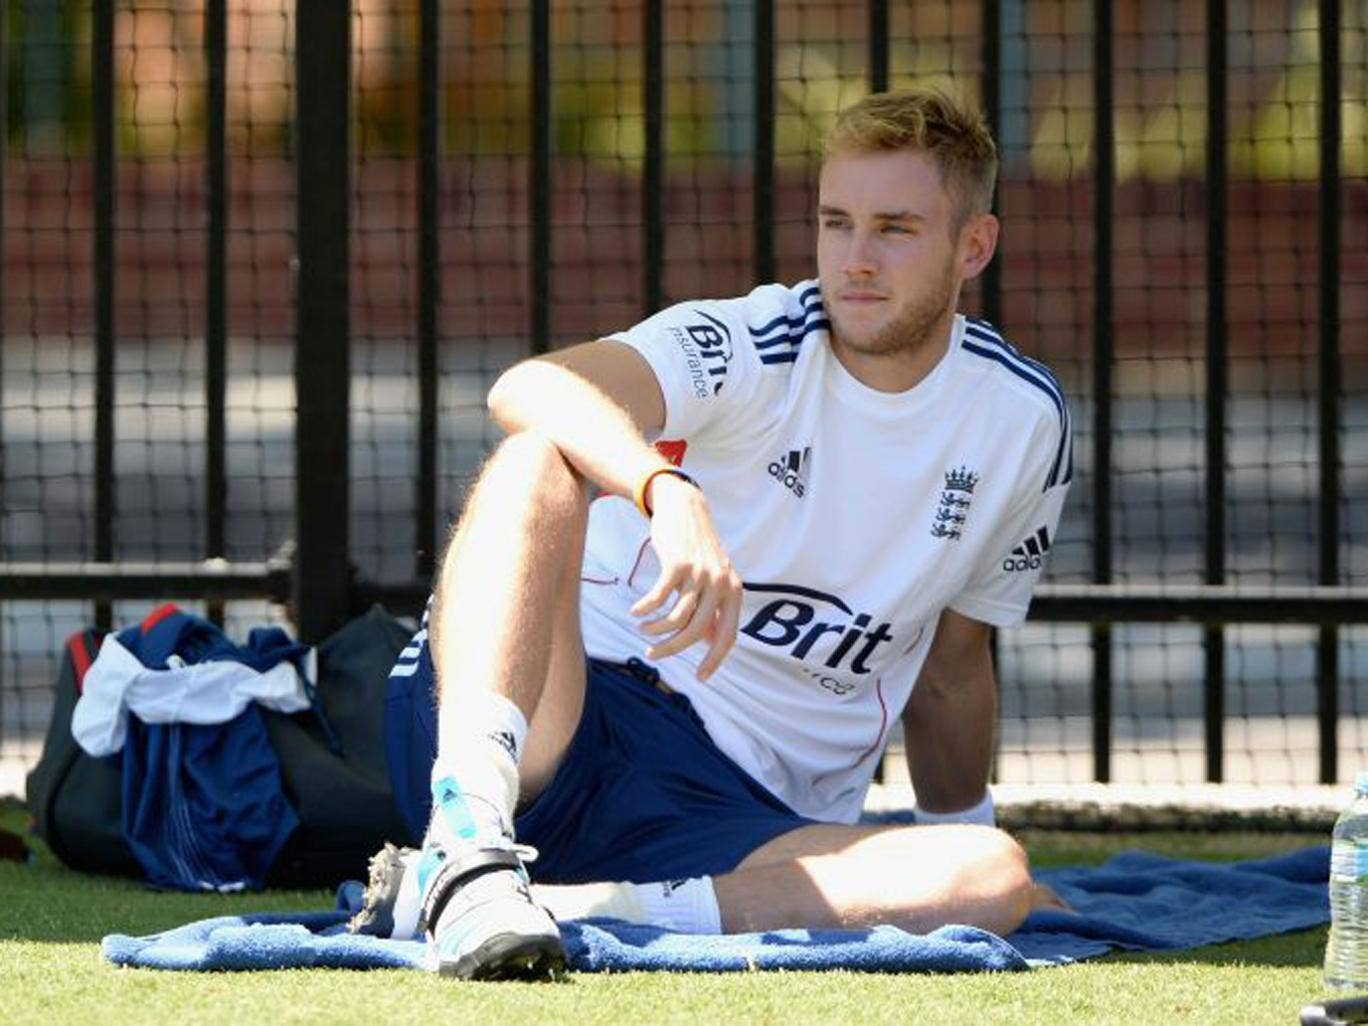 The England bowler pulled no punches when discussing Lehmann and Warne and the looming Ashes battle